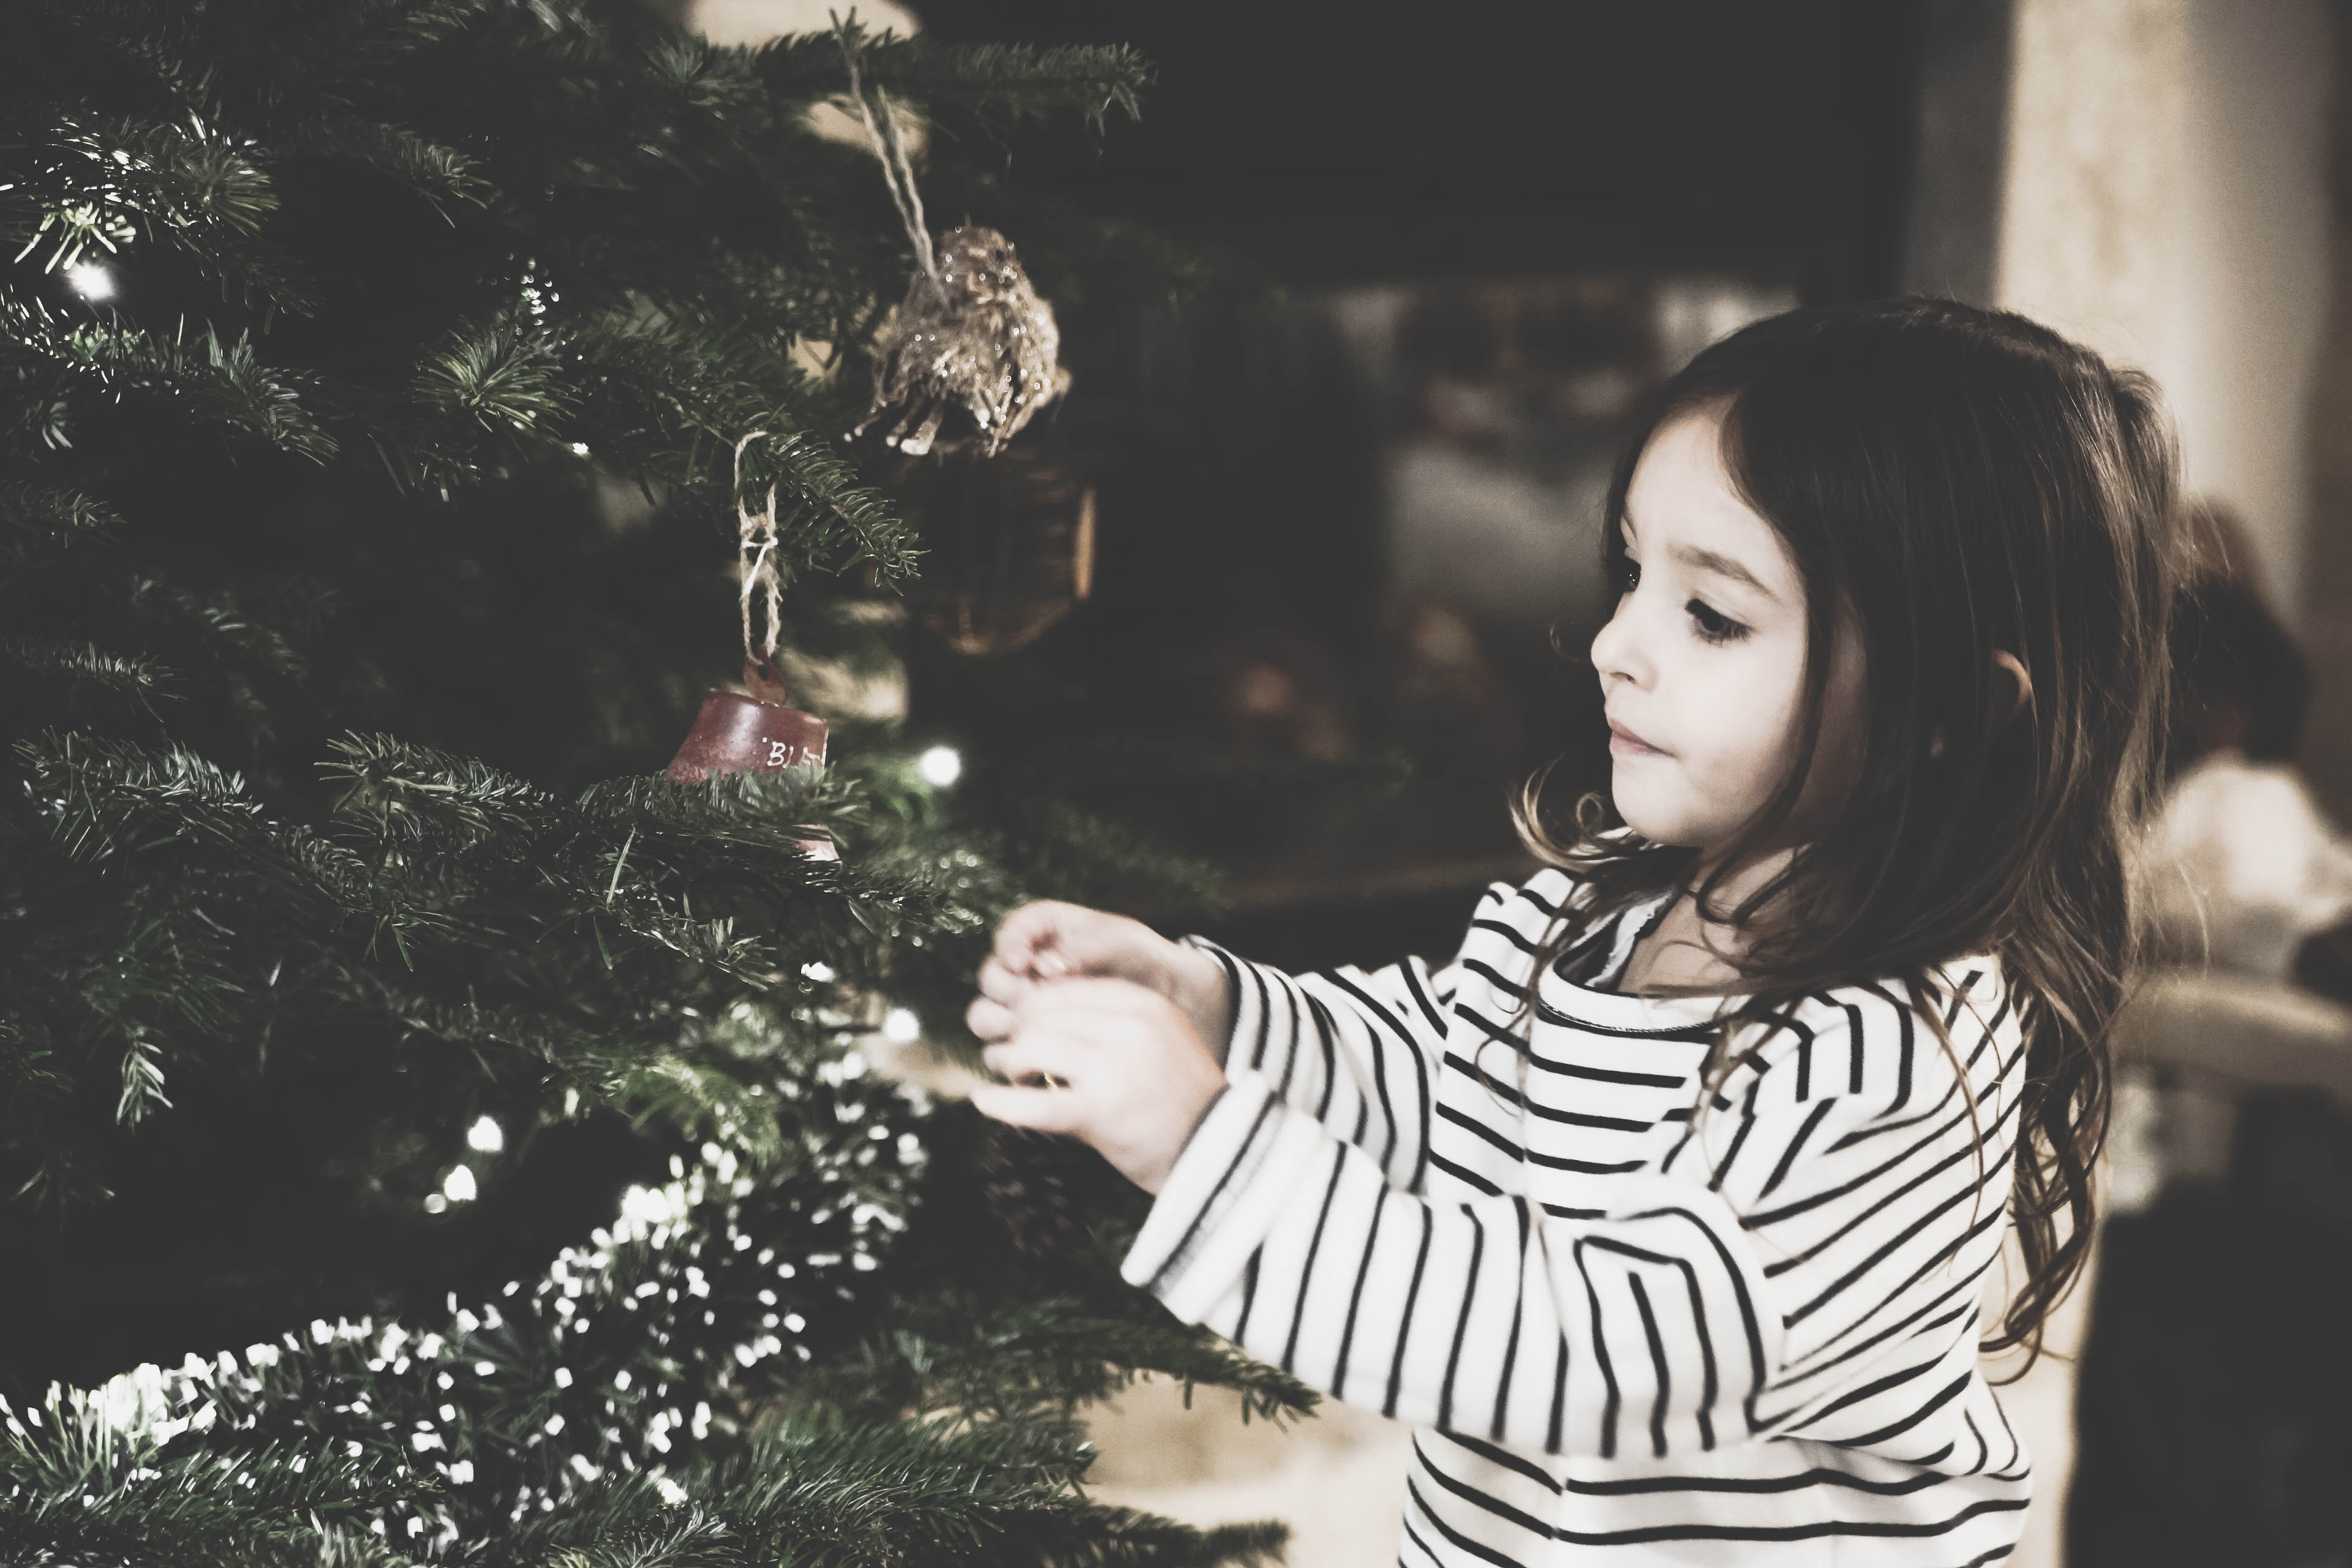 Girl hanging ornaments on tree